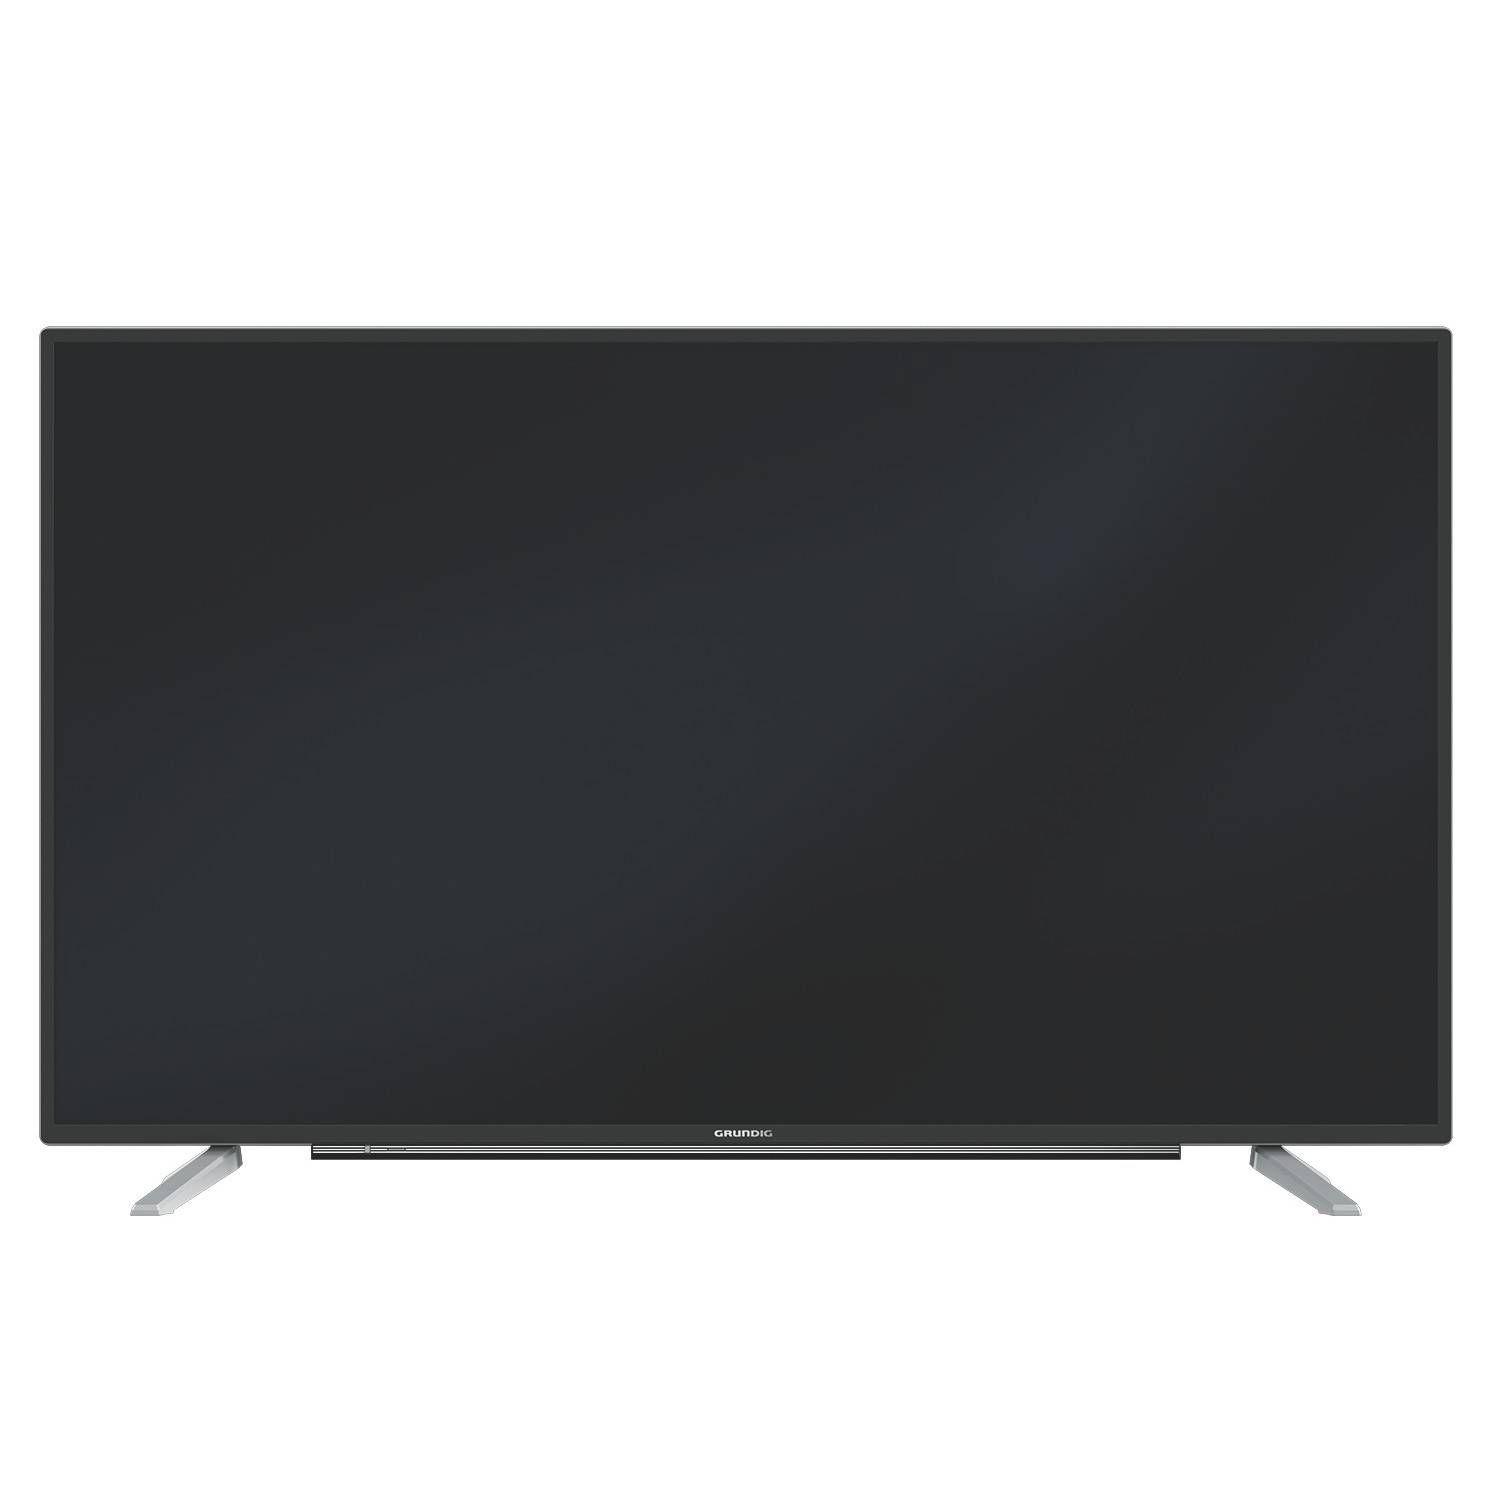 "Grundig 40"" 4K UHD Smart TV 40VLX7730BP (musta)"